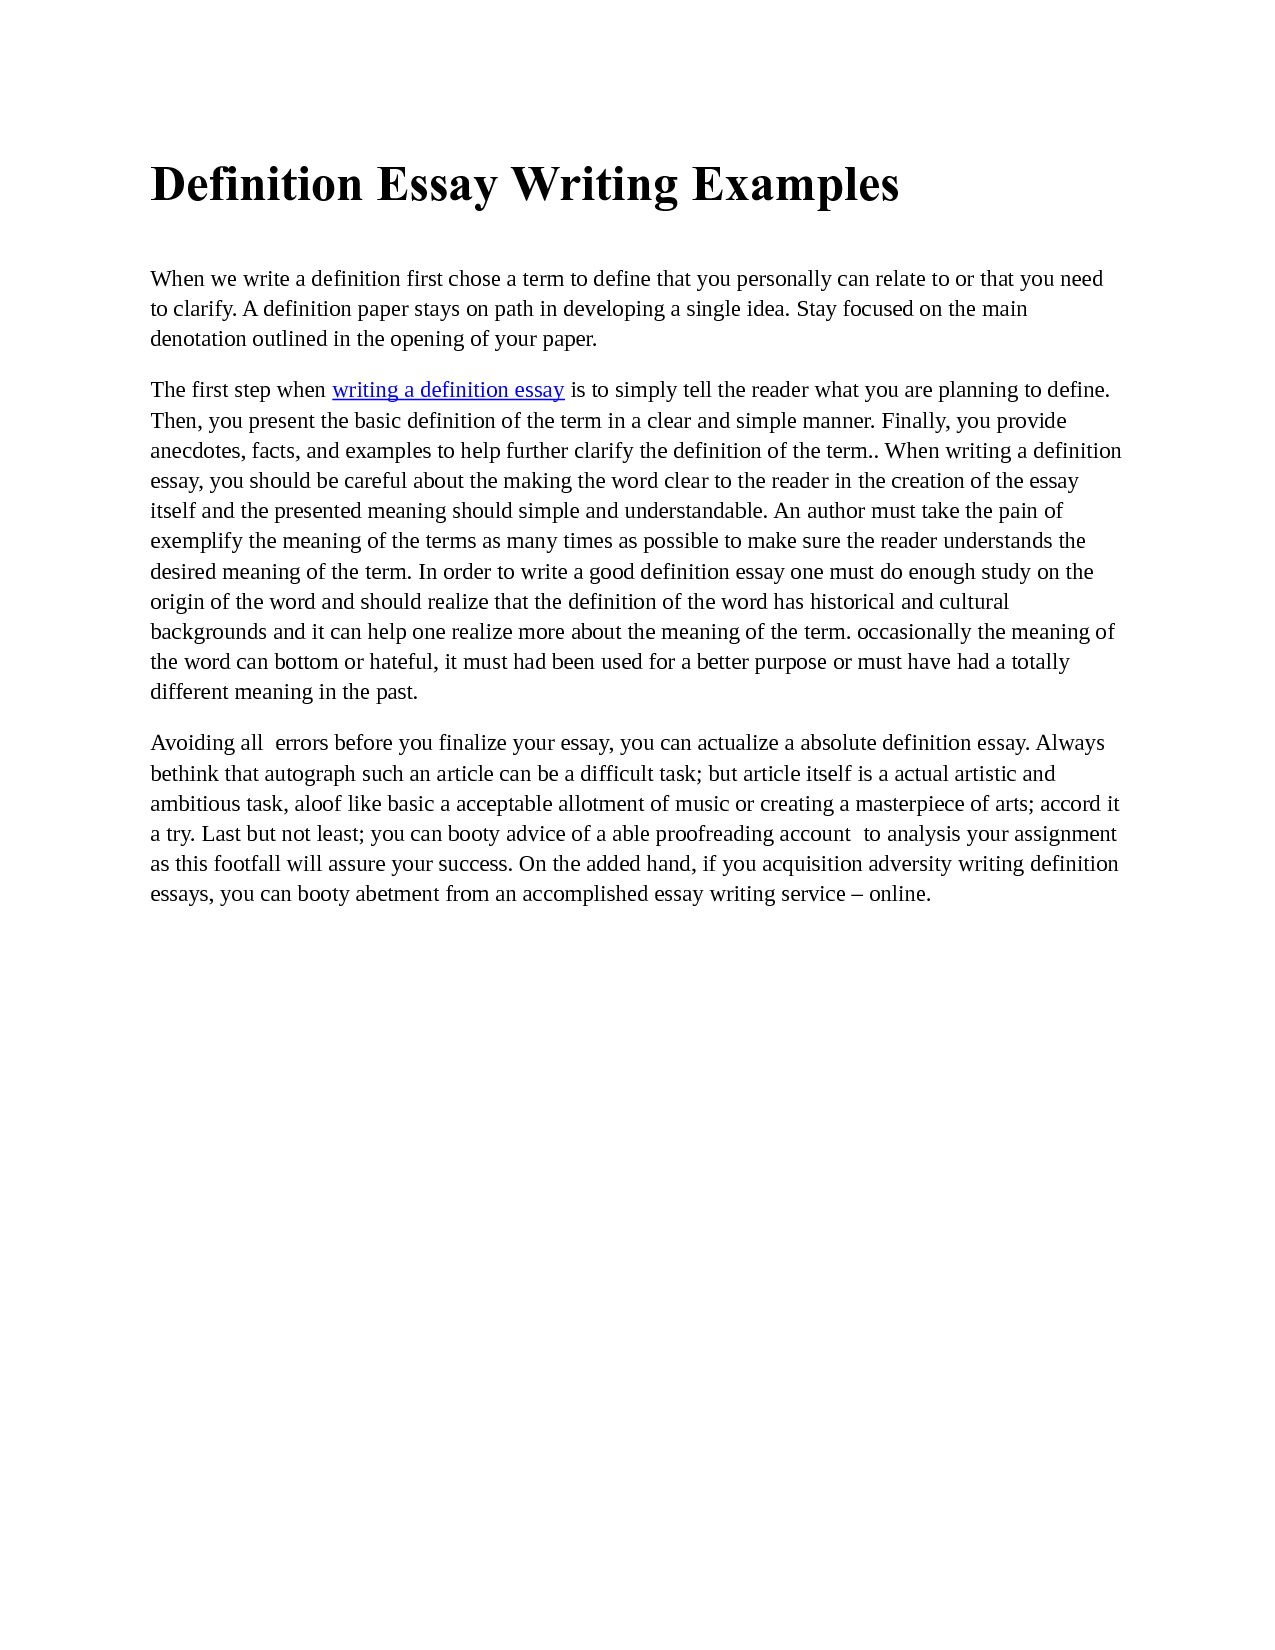 my hometown essay conclusion Learn how to conclude your essay effectively with guidelines from university of  maryland  learn about the elements of a successful essay conclusion.